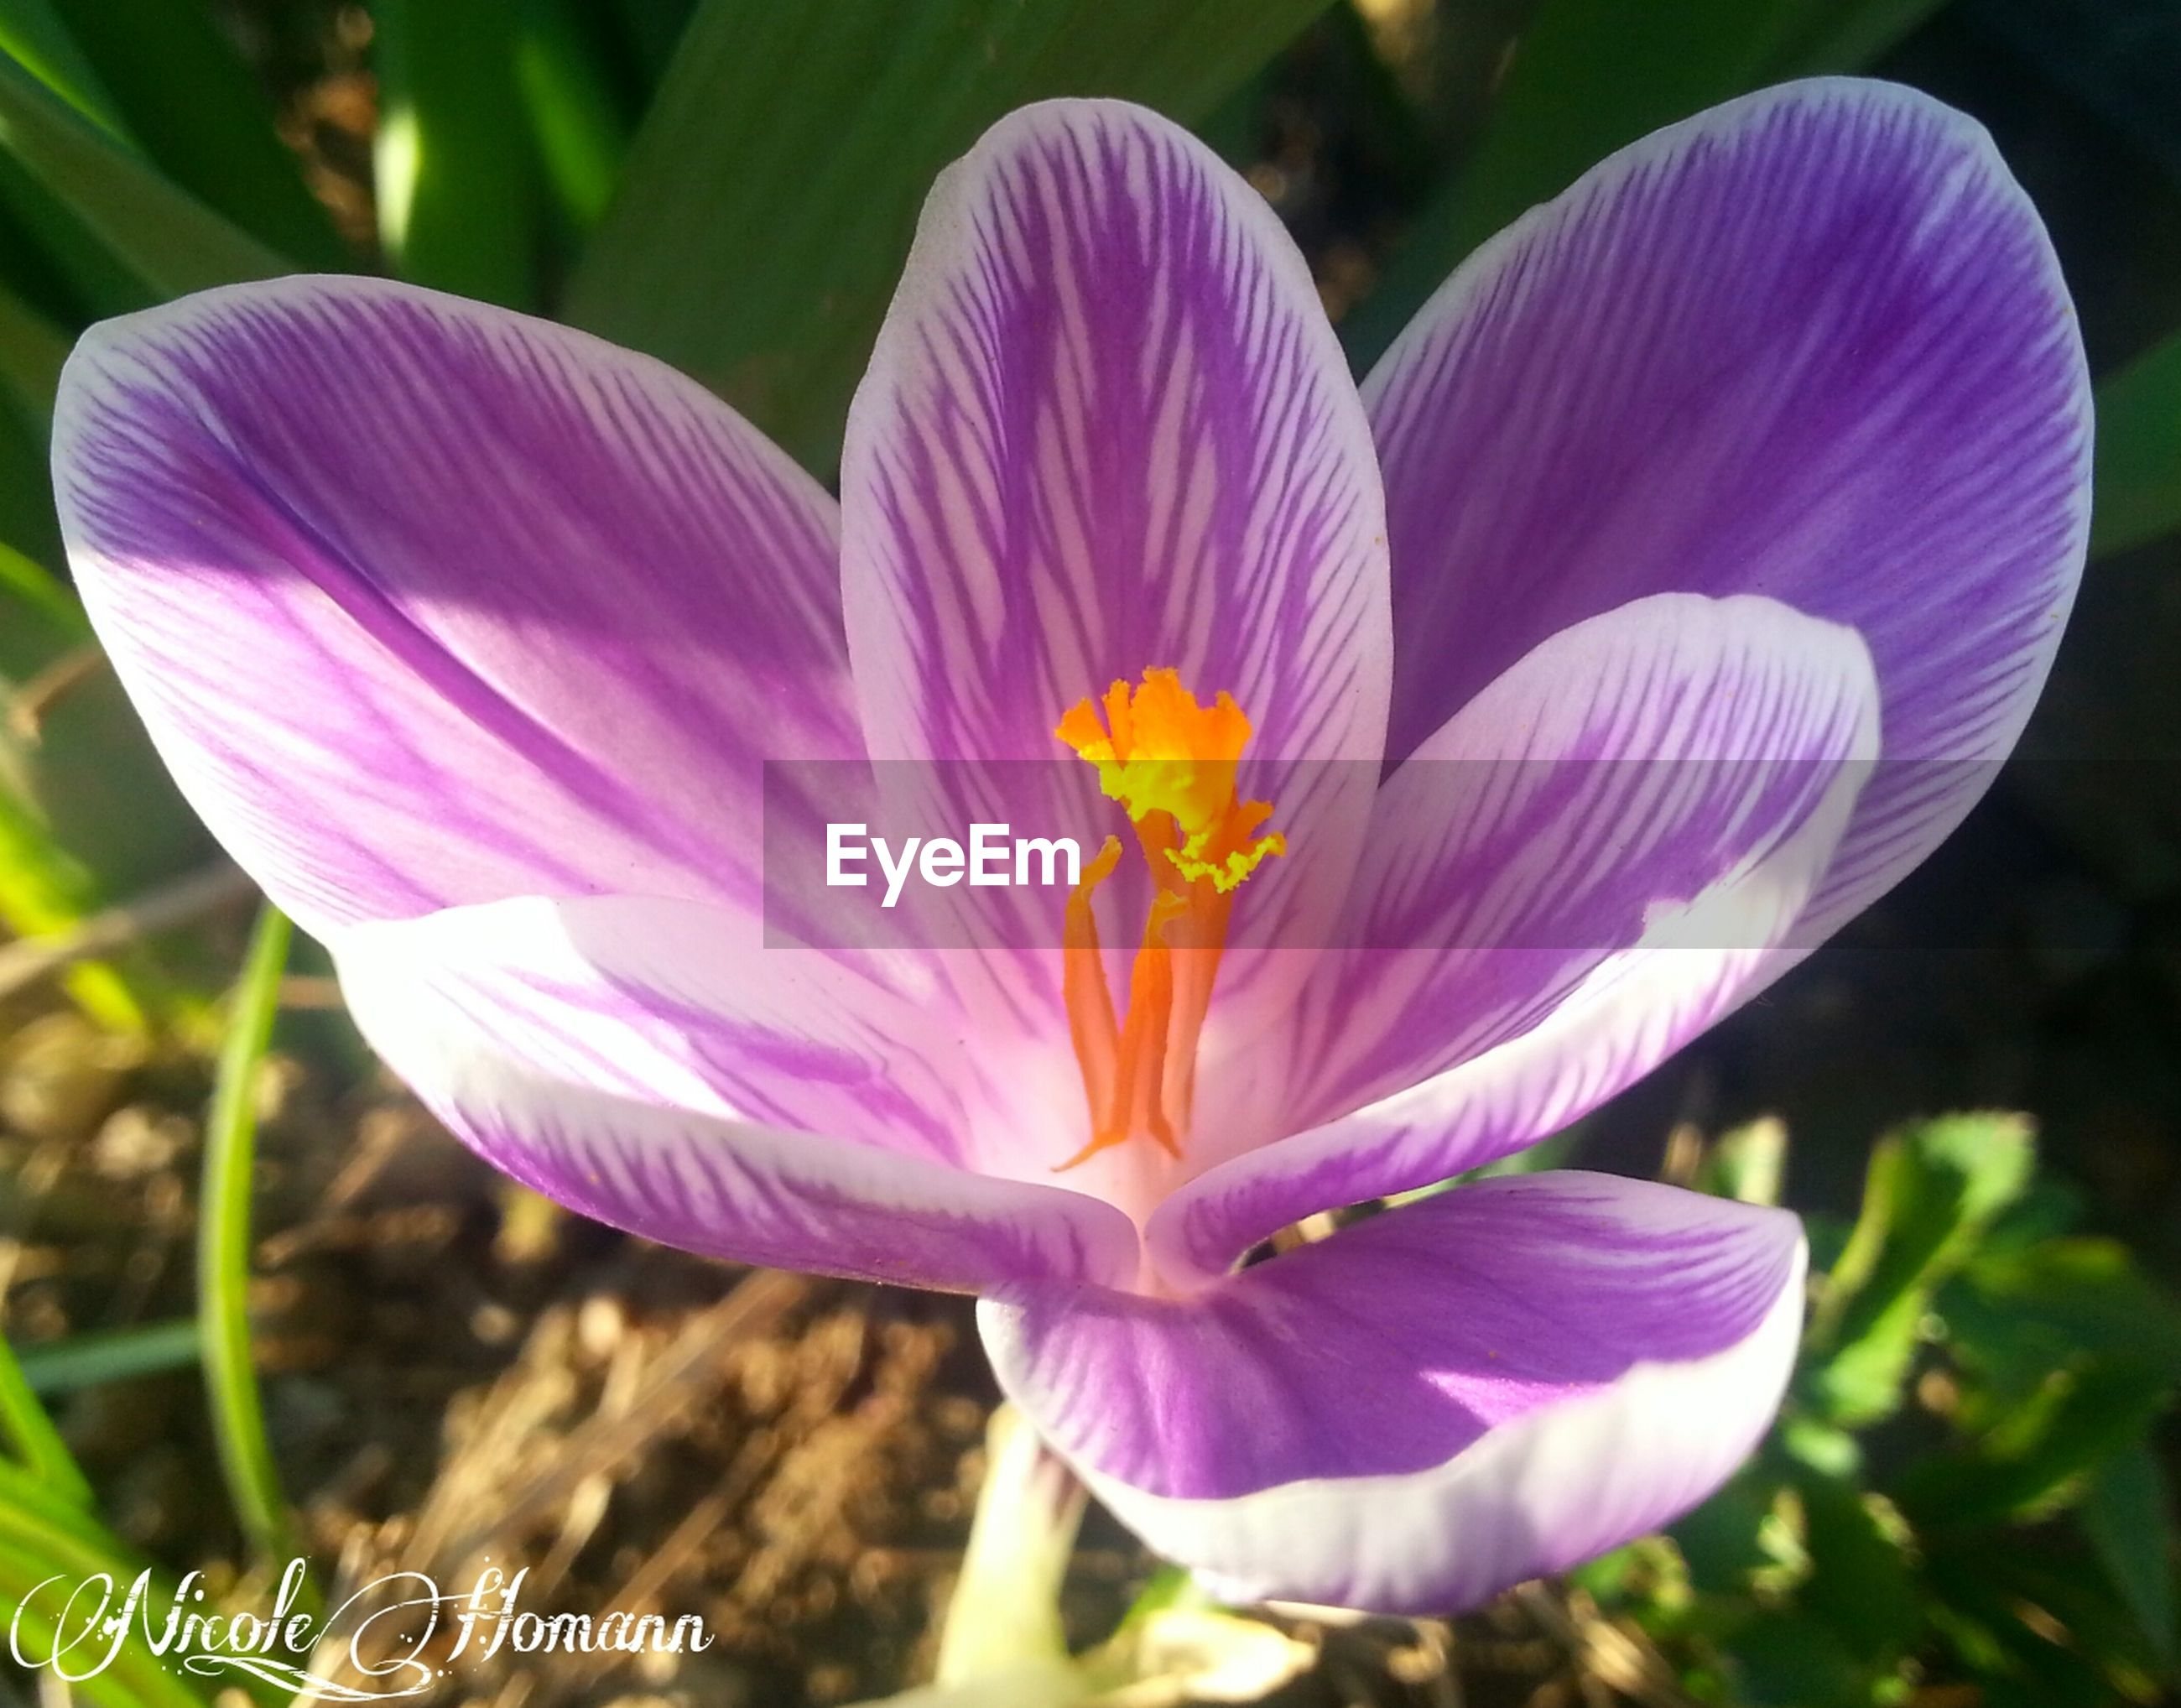 flower, petal, freshness, flower head, fragility, purple, growth, beauty in nature, close-up, blooming, nature, focus on foreground, stamen, pollen, plant, in bloom, single flower, blossom, day, outdoors